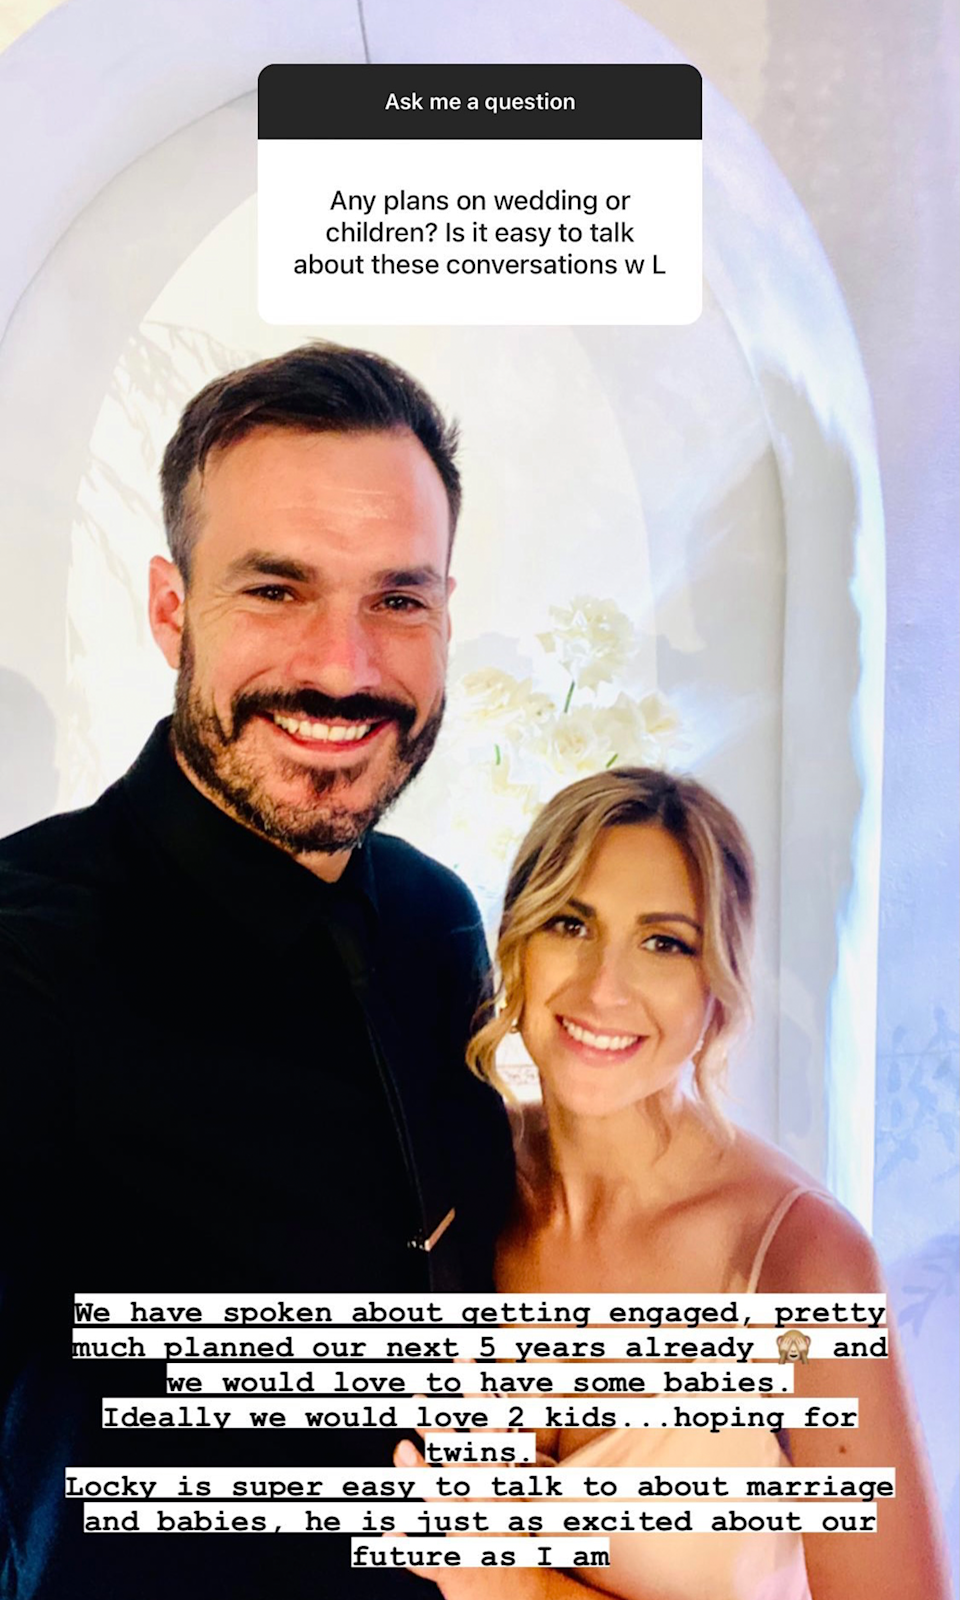 Bachelor's Irena posted a photo of her and Locky on her Instagram story saying that her and Locky have discussed engagement plans and 'would love to have some babies'.